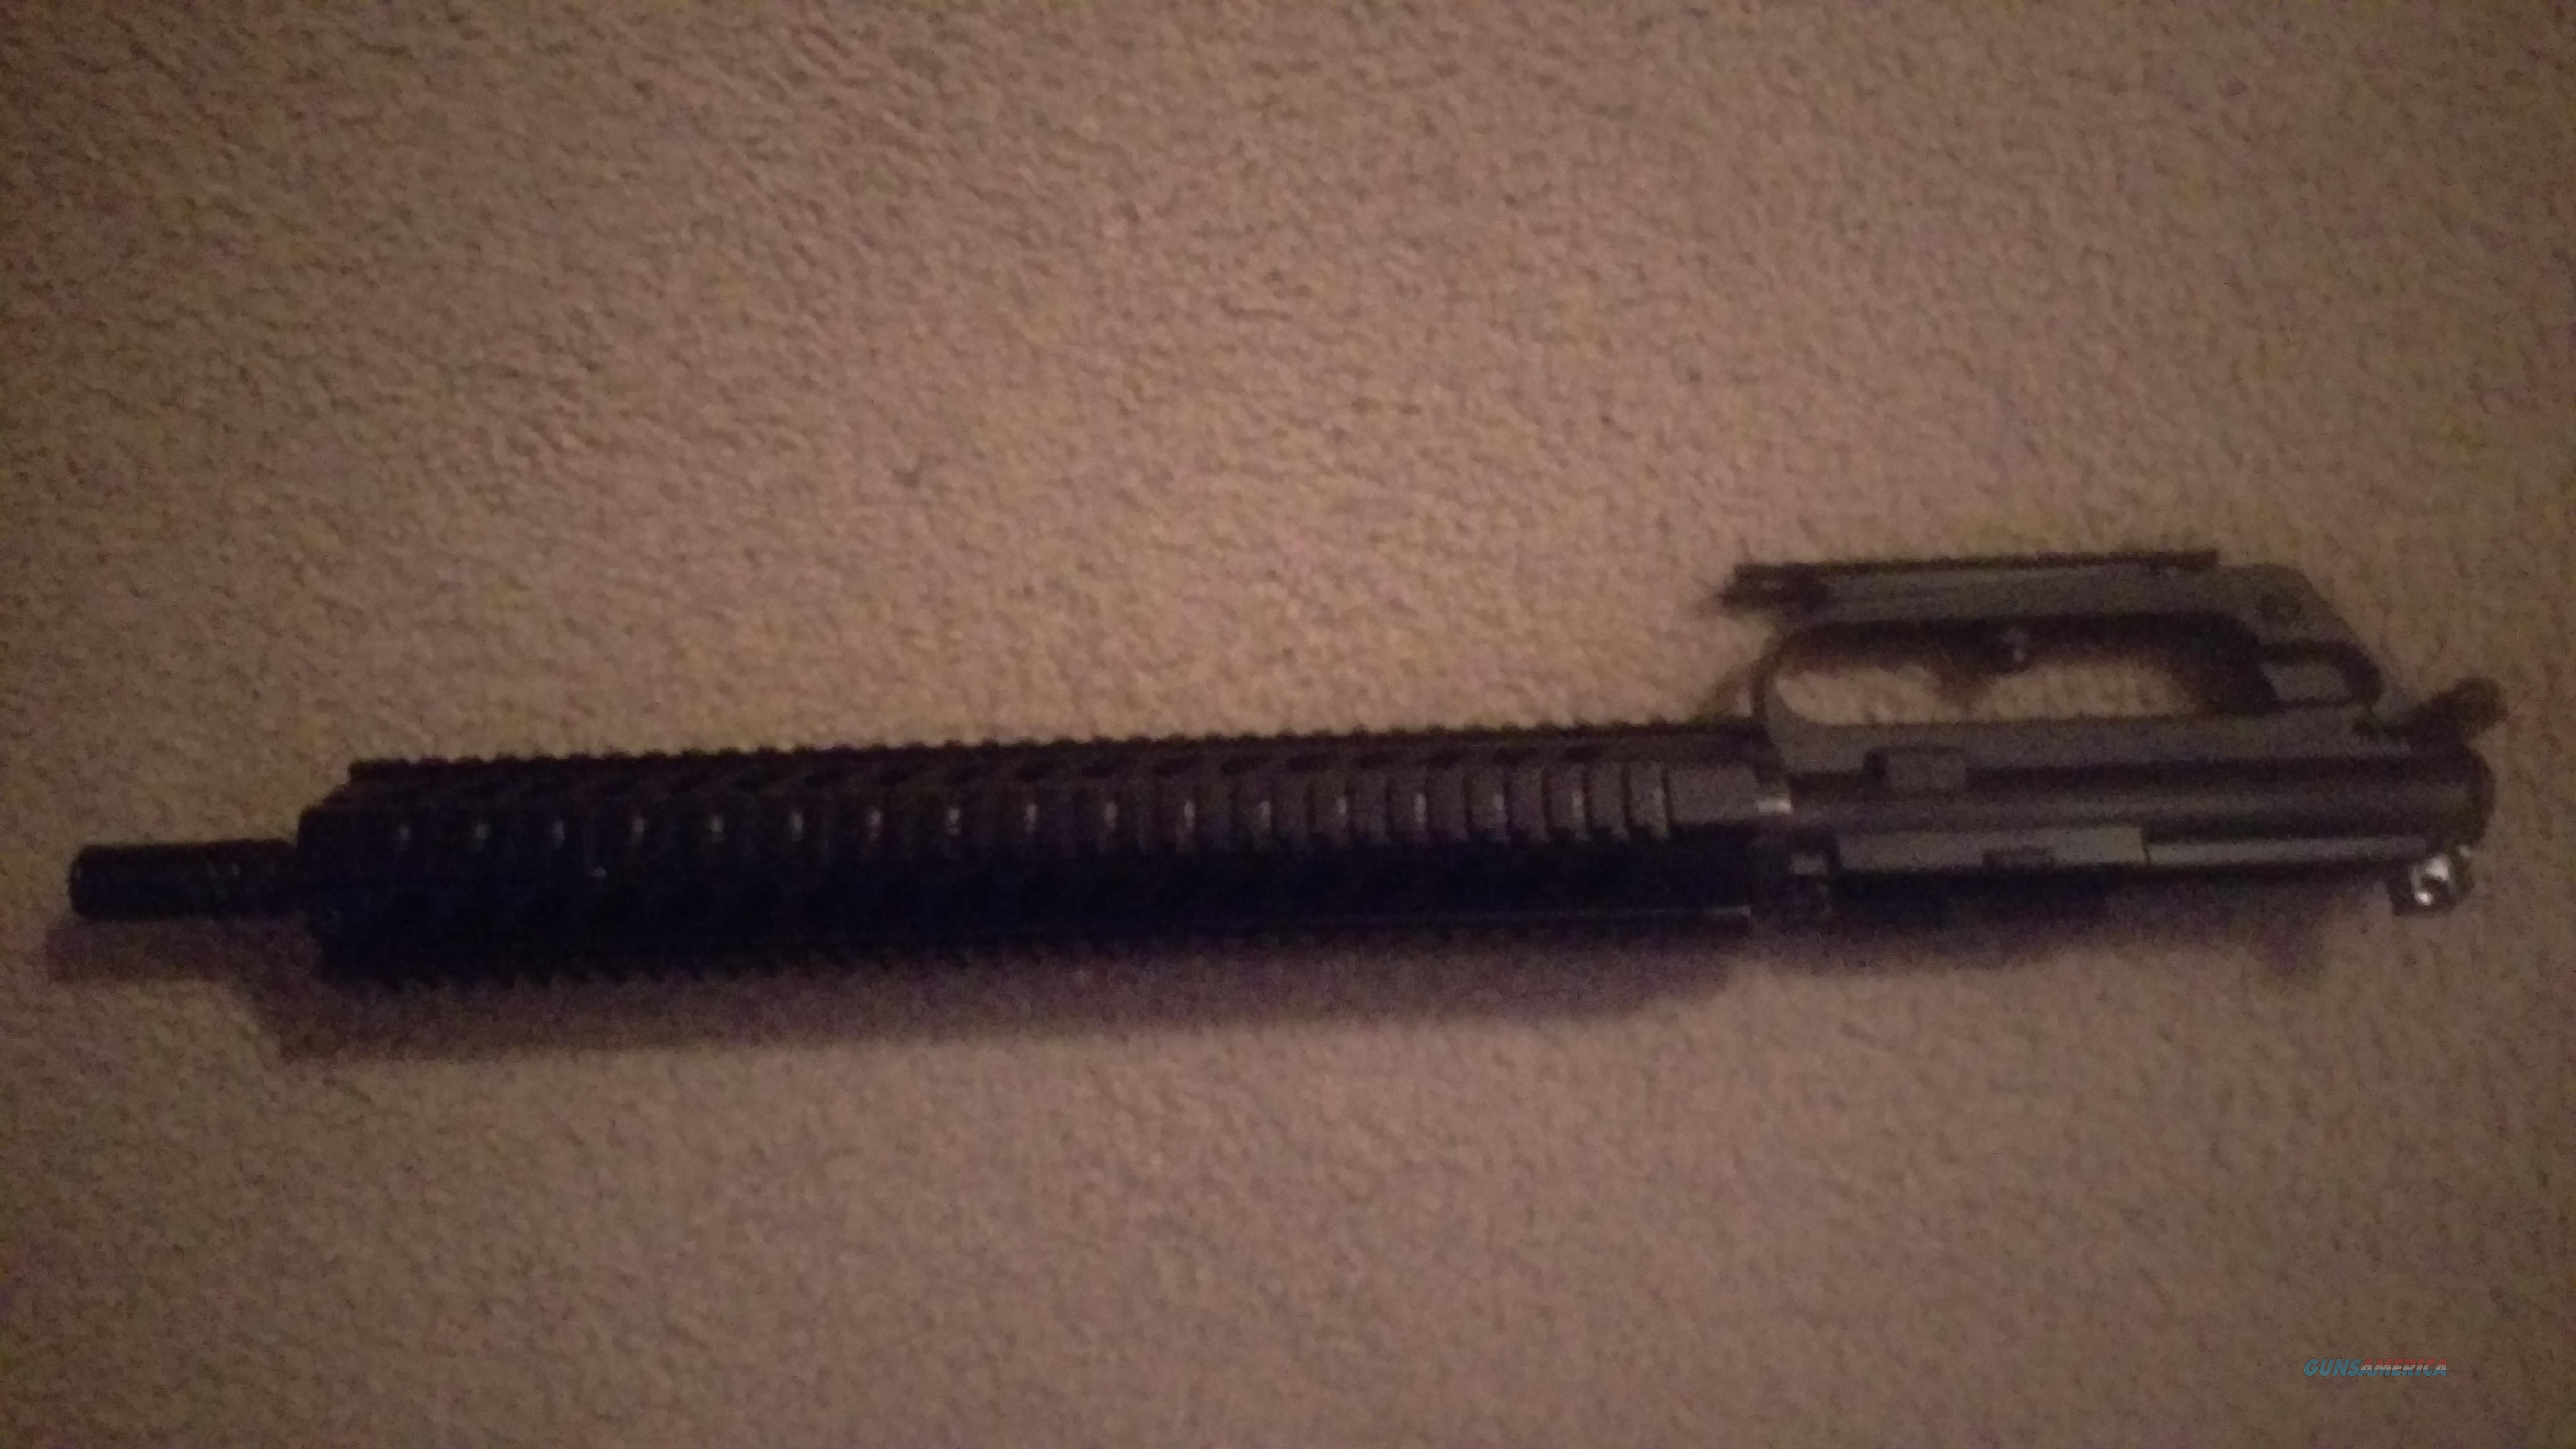 DPMS 223 UPPER USED 200 RDS  Guns > Rifles > DPMS - Panther Arms > Upper Only